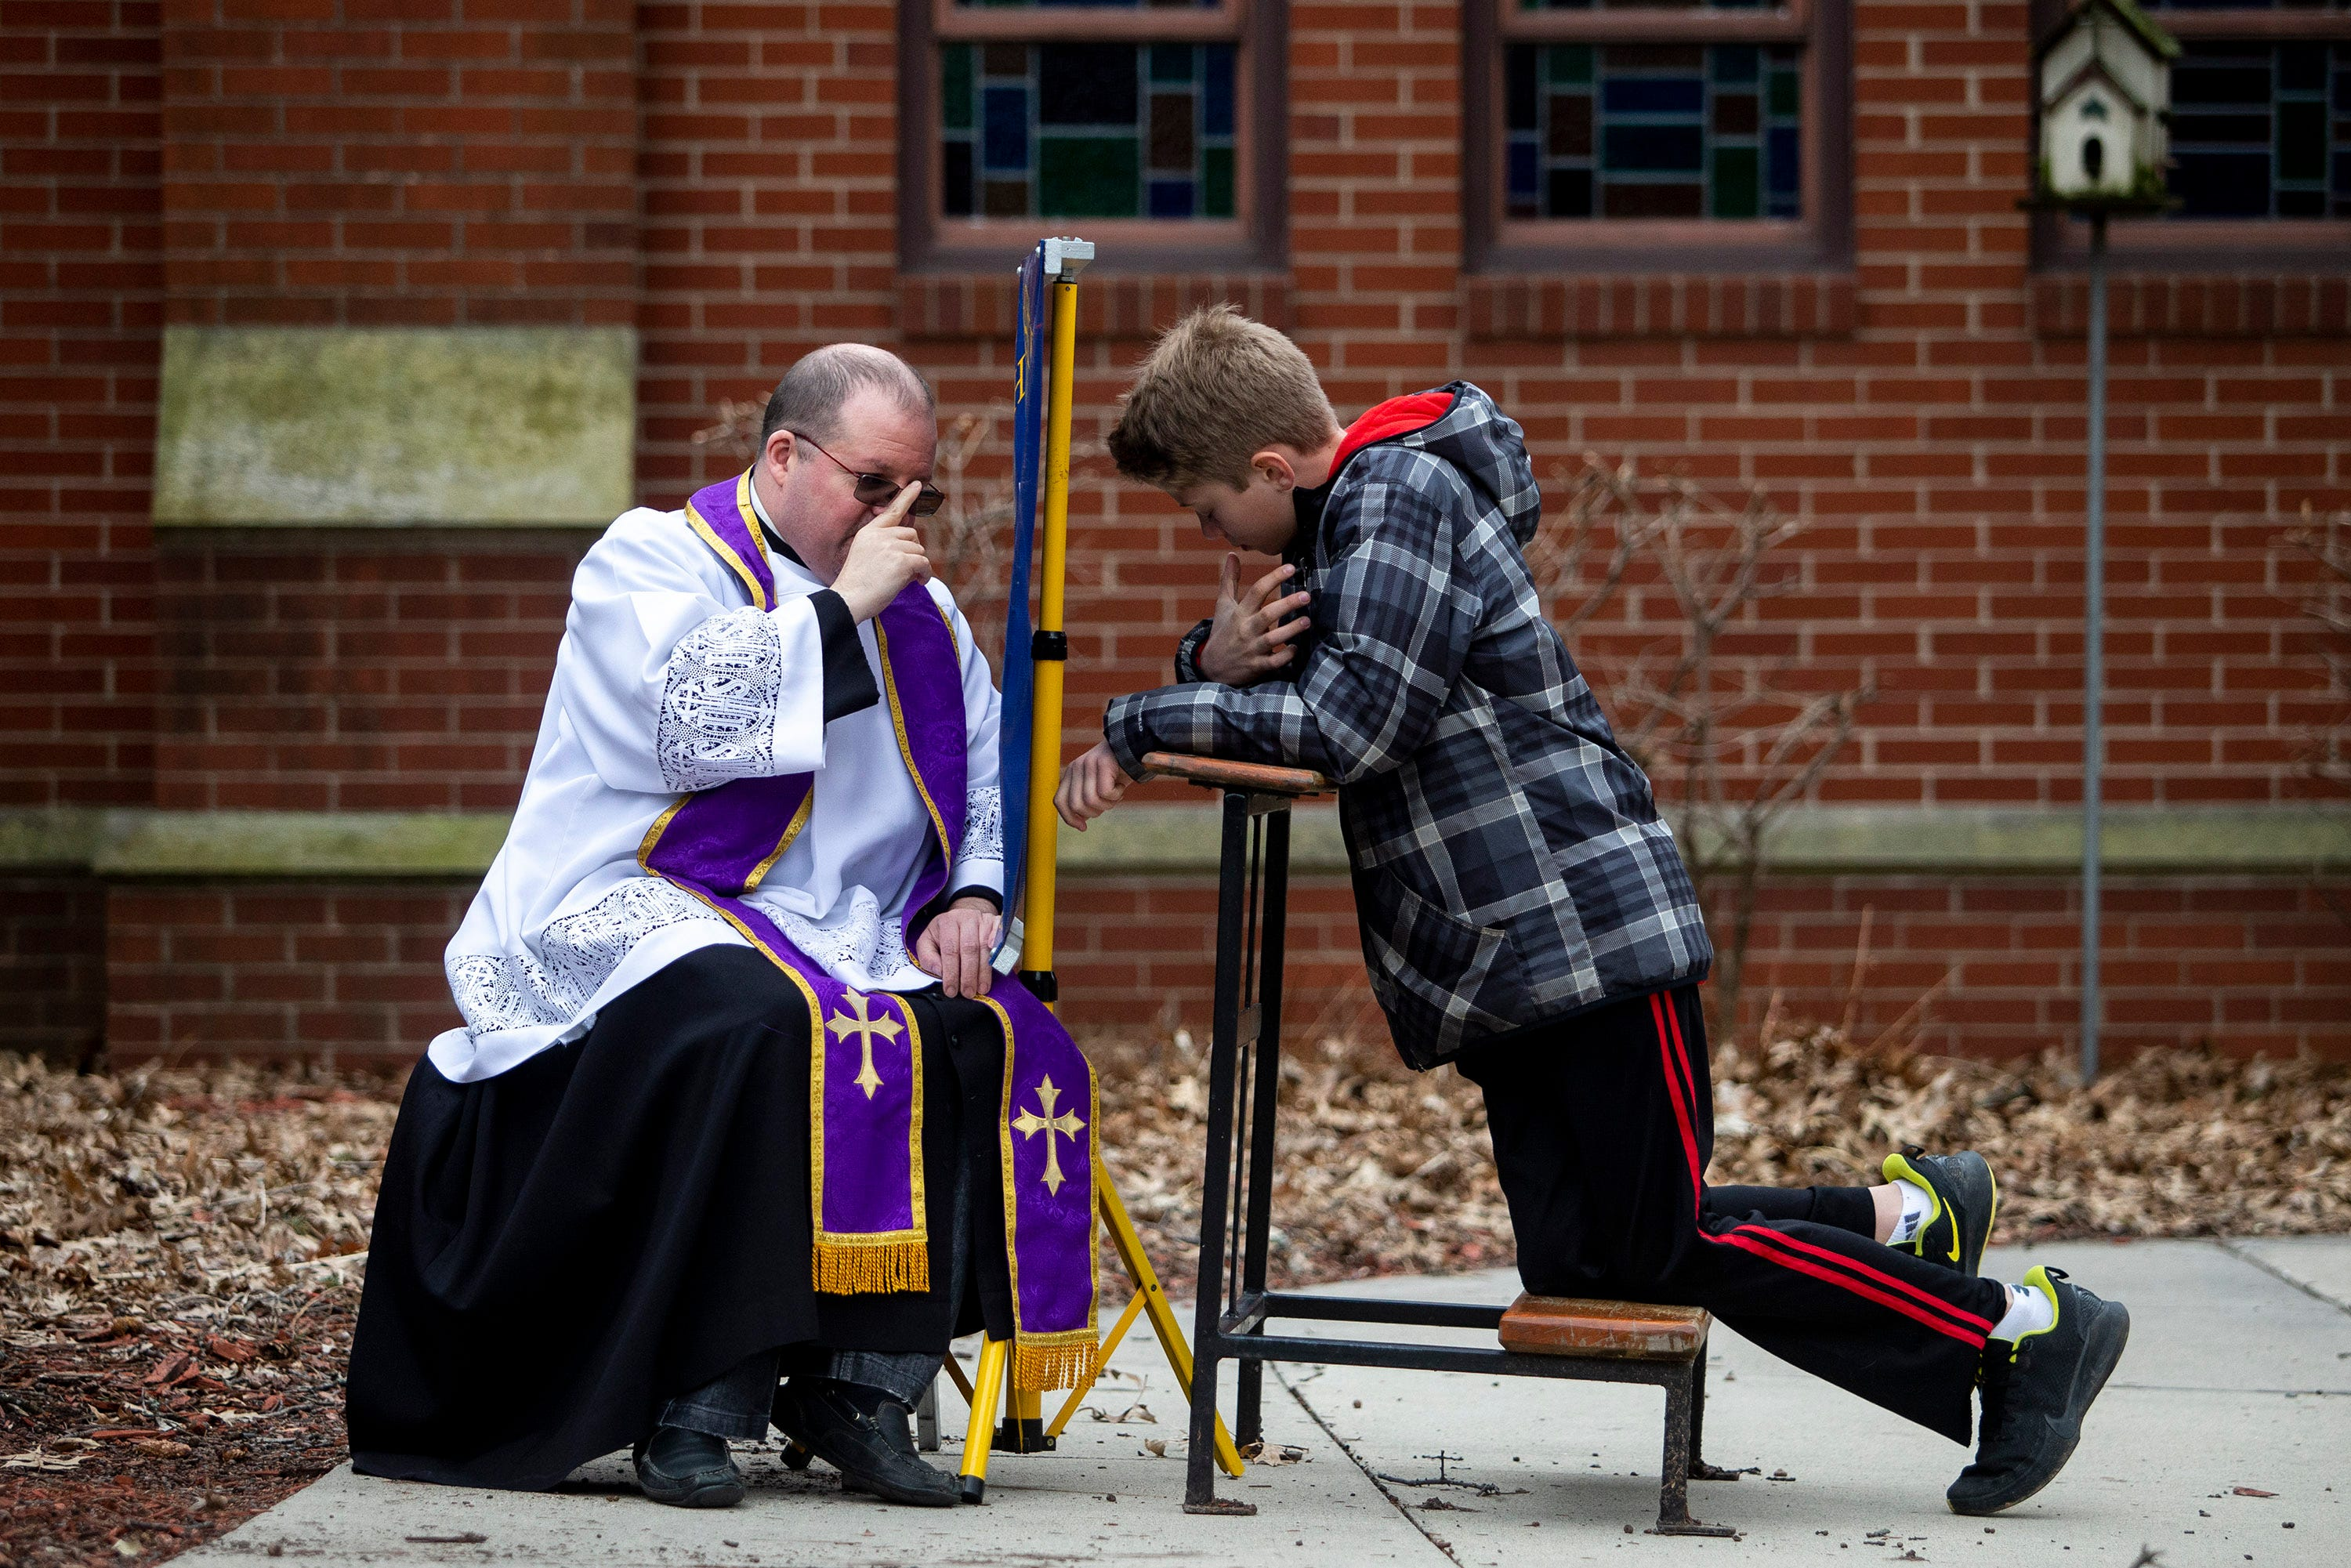 The Rev. P.J. McManus, of Christ the King Church, gives a blessing while hearing confession from Johnny, a parishioner of Christ the King, outside of the church's entrance on Tuesday, March 24, 2020, in Des Moines. McManus moved confession outside after the rise of COVID-19 in Iowa.